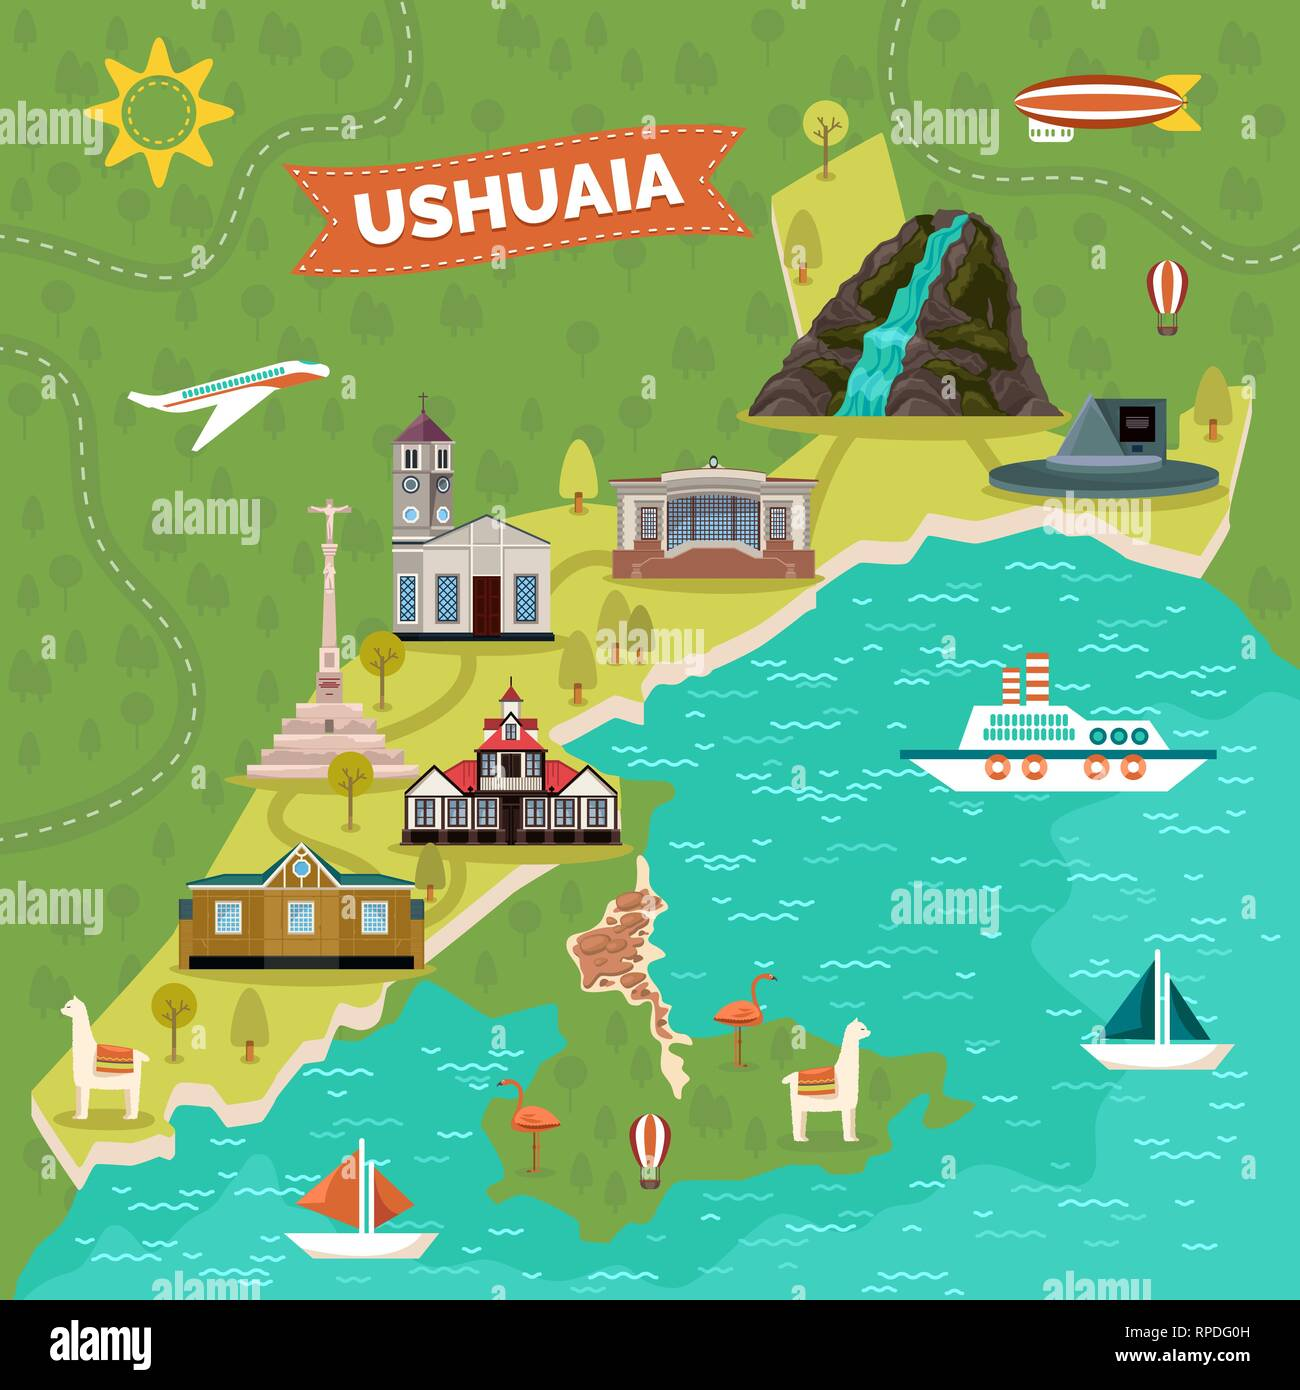 Ushuaia town map with sights, landmark advertising Stock ... on current events maps, environmental issues maps, horse track maps, service provider maps, professional networking maps, interview maps, market growth maps, trade show maps, designing maps, misleading maps, ancient world history maps, large format maps, radio coverage maps, visual thinking maps, commercial maps, primitive maps, cartography maps, exclusive distribution maps, computer game maps, top 10 maps,